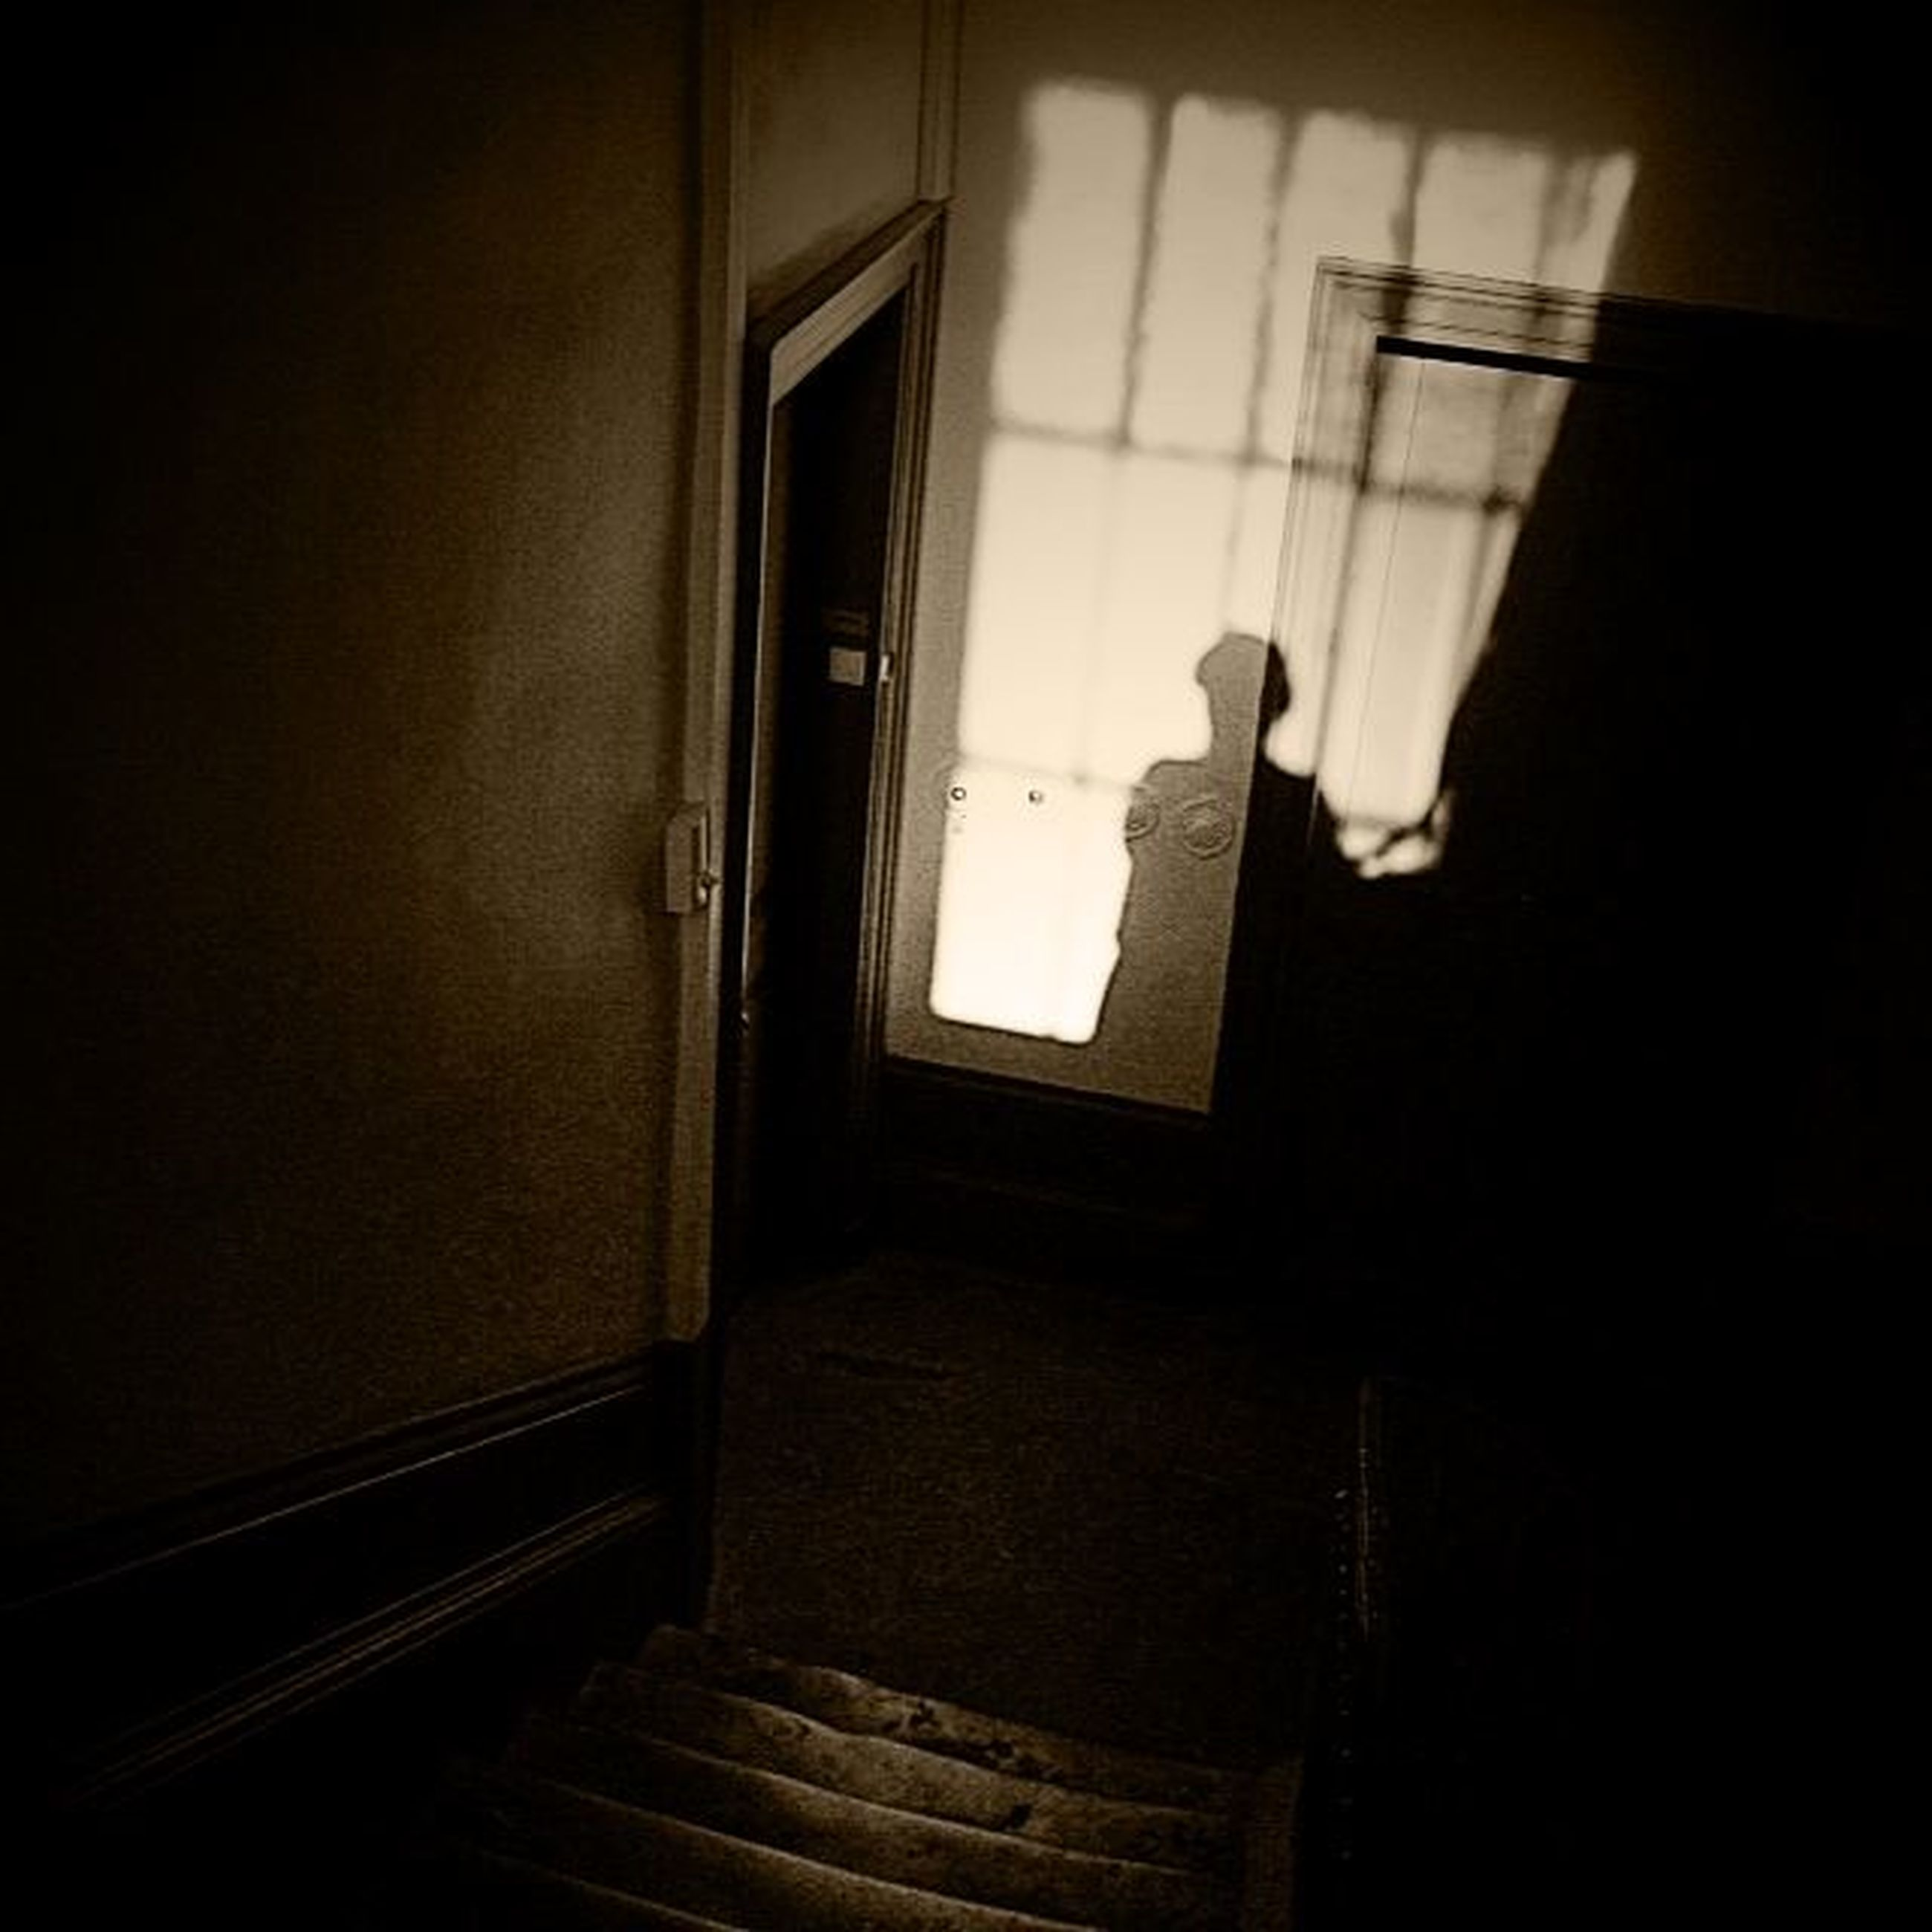 indoors, door, architecture, window, built structure, house, wall - building feature, home interior, one person, wall, doorway, open, dark, entrance, shadow, domestic room, sunlight, absence, day